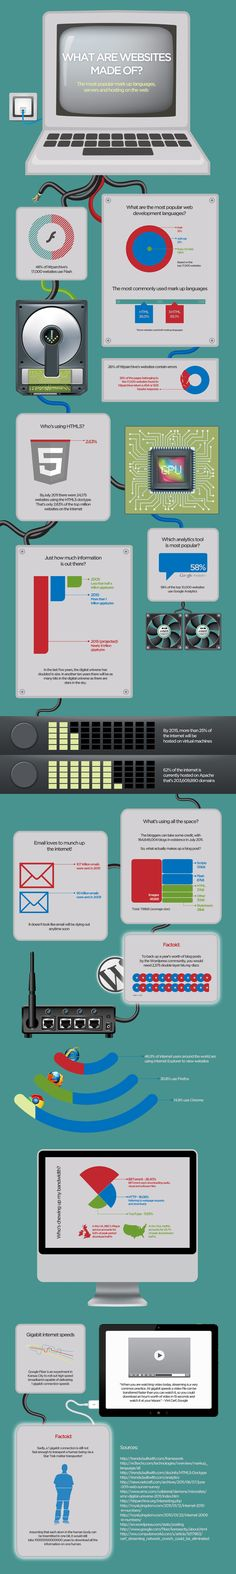 What are Websites made of?